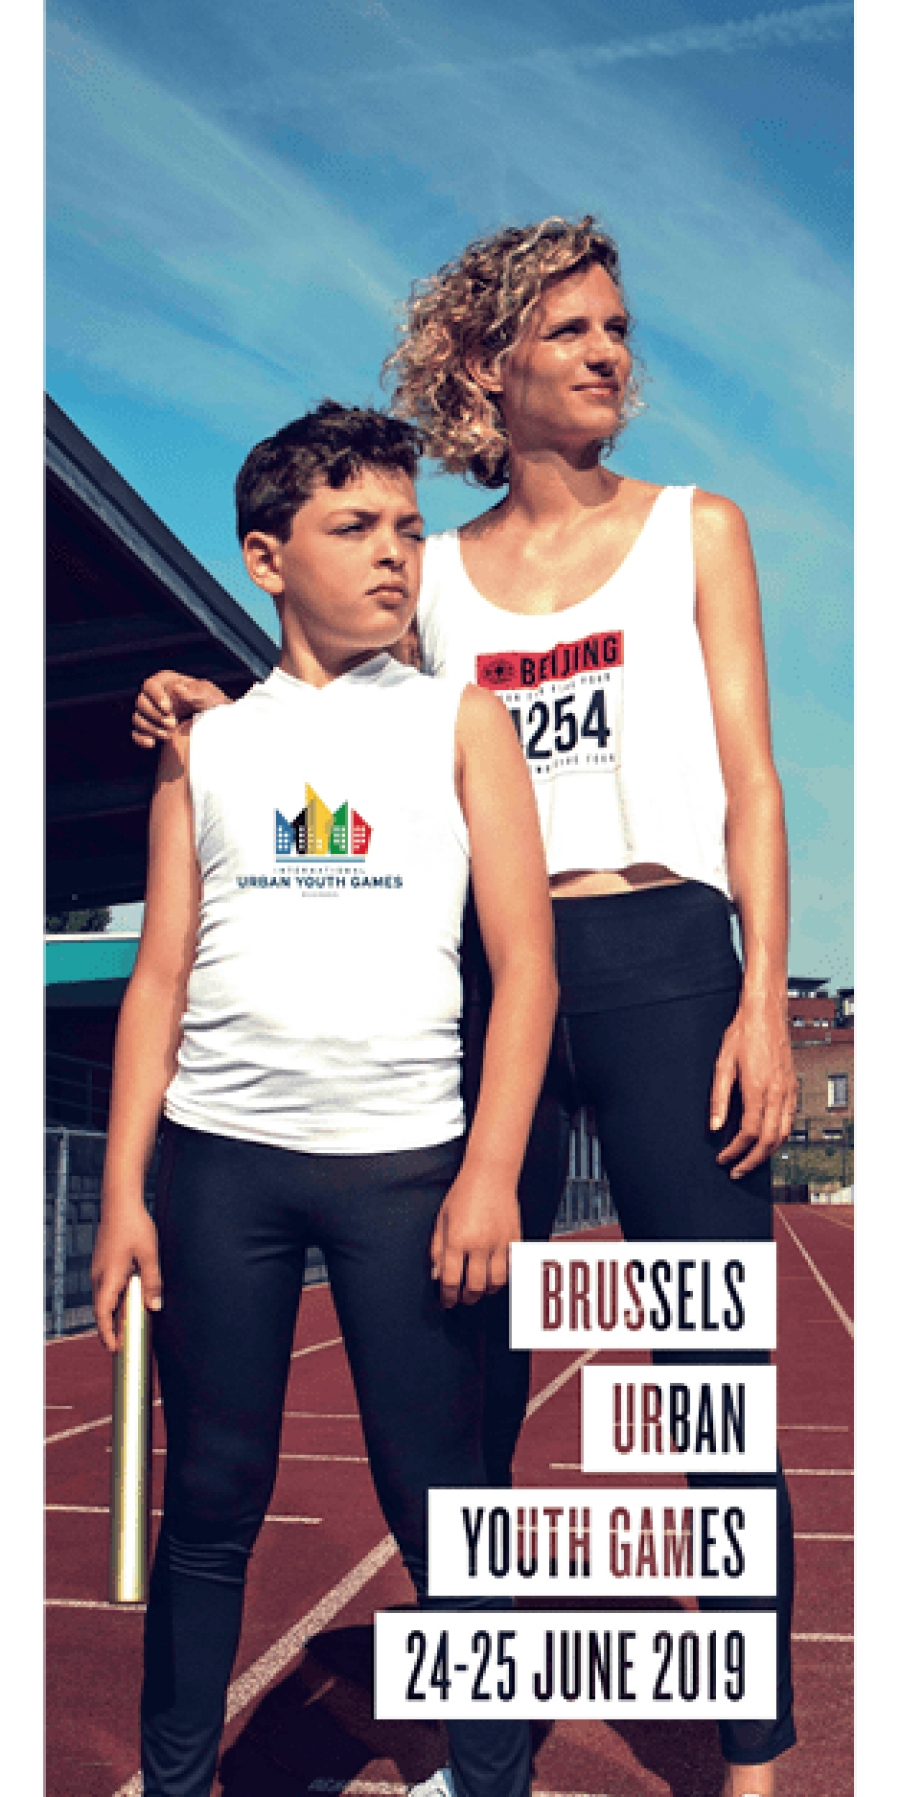 Wallonie-Bruxelles - 1er Brussels Urban Youth Games